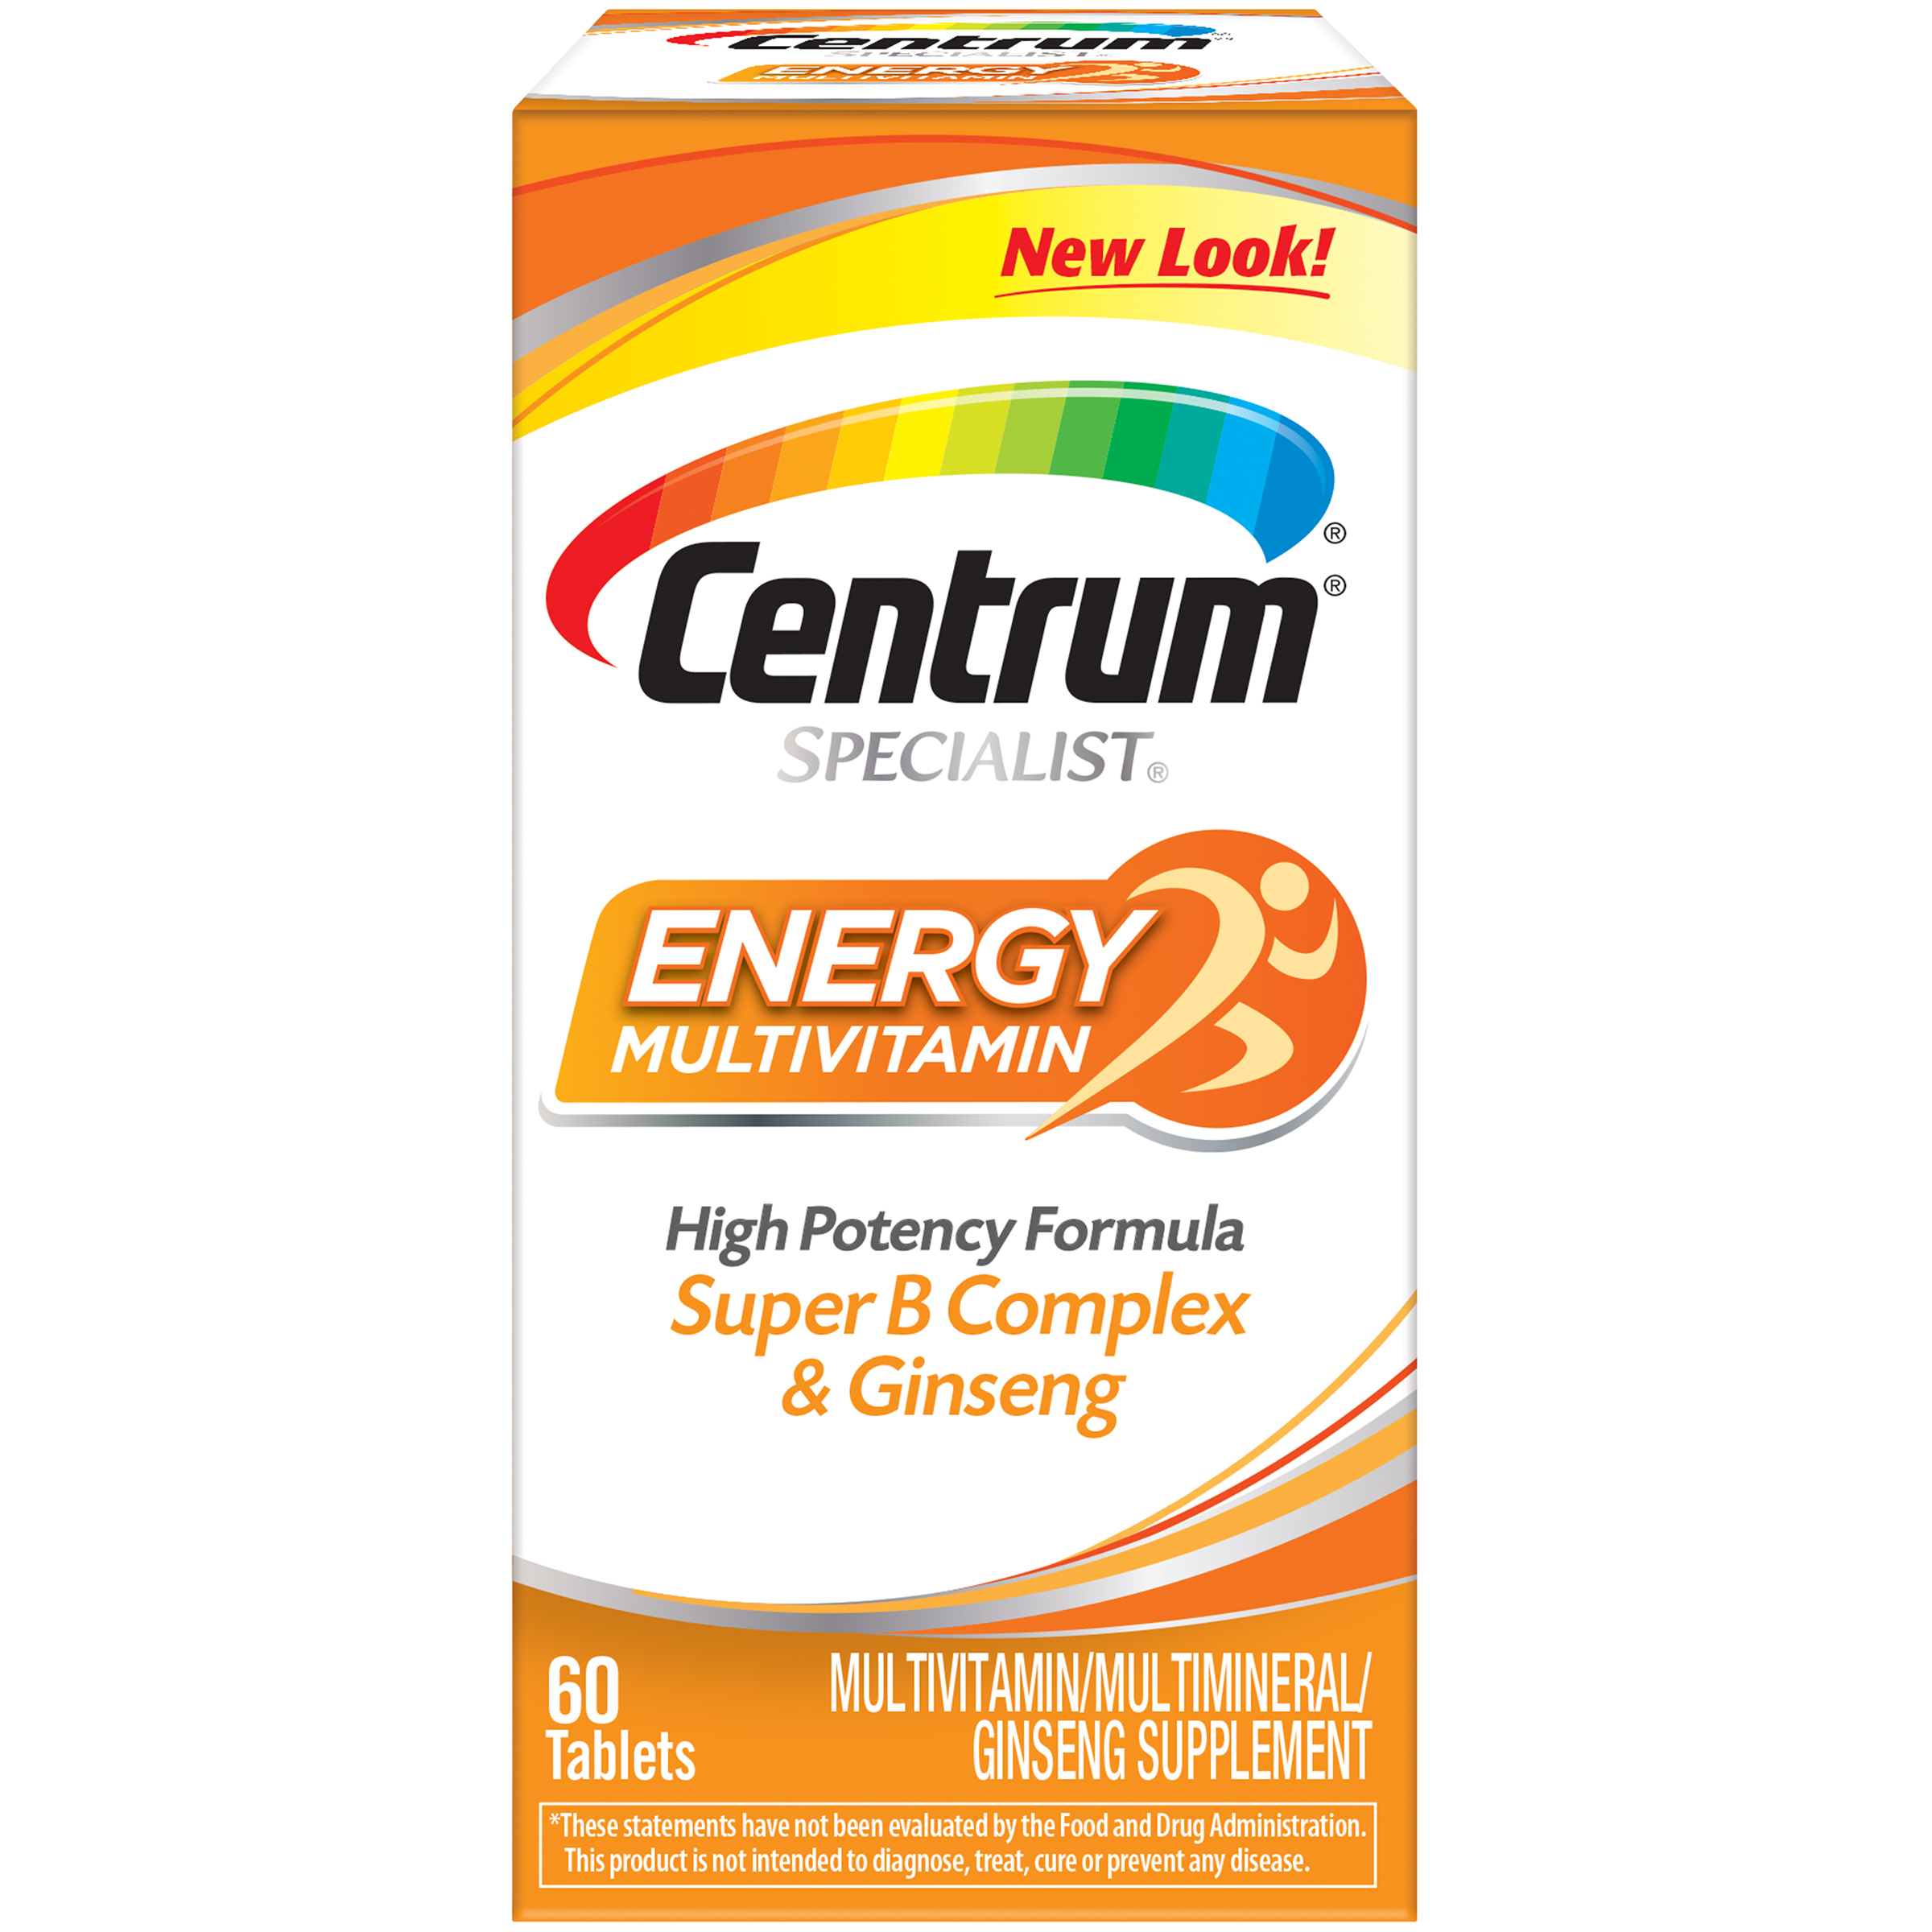 Centrum Specialist Energy Adult 60 Ct Multivitamin Multimineral Supplement Tablet Vitamin D3 C B Vitamins And Ginseng Walmart Com Walmart Com